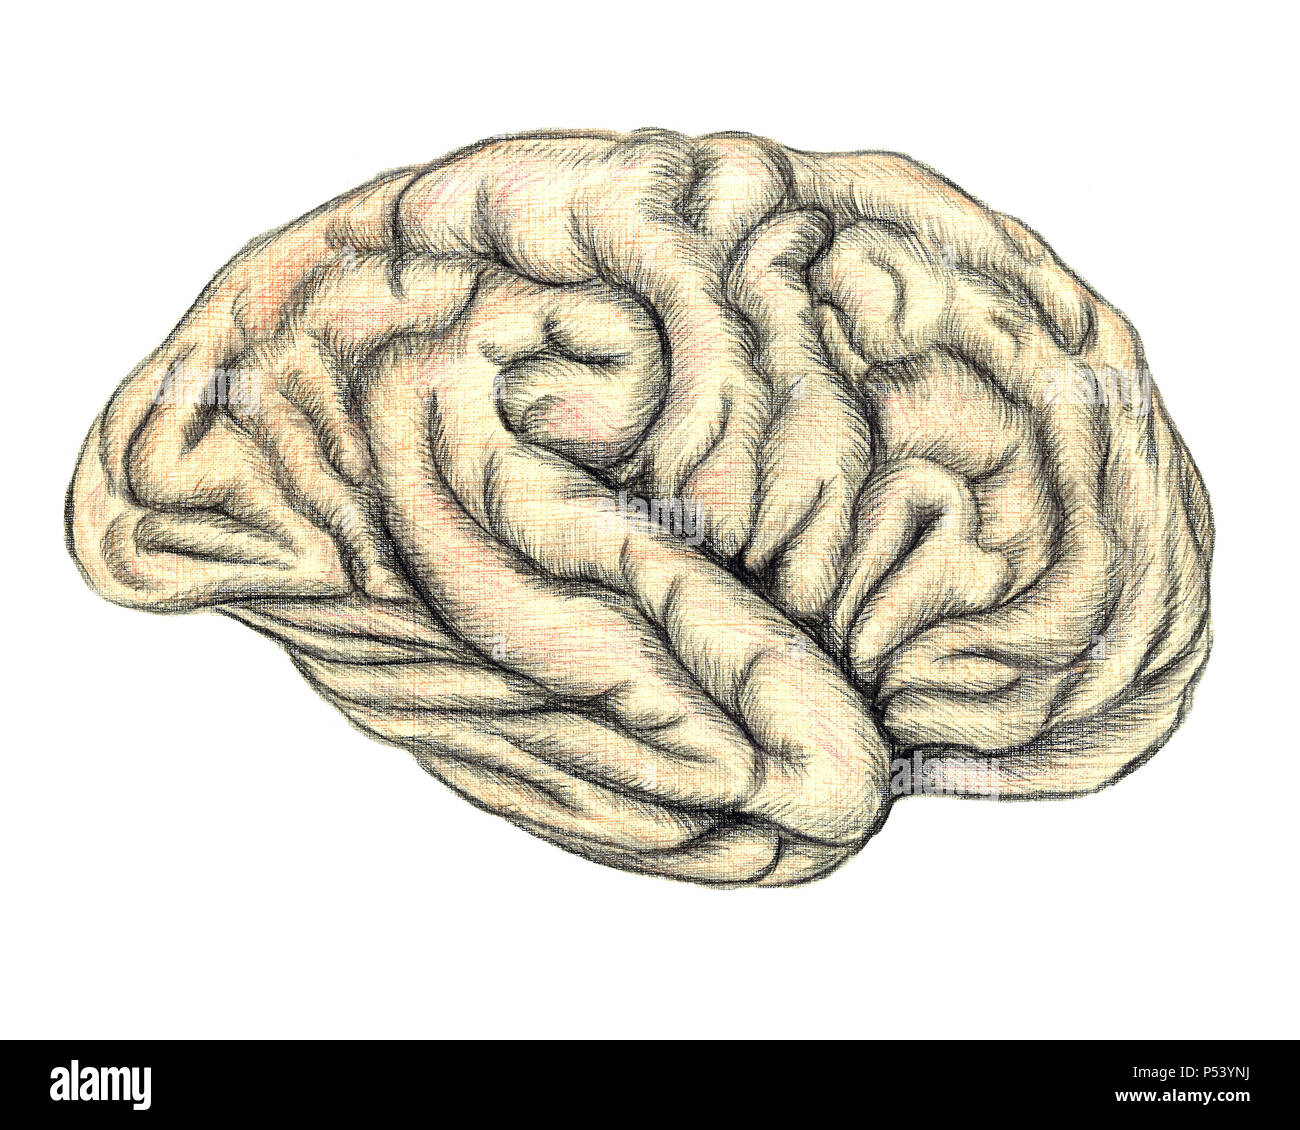 Human brain side diagram stock photos human brain side diagram human brain side view hand drawn medical illustration color pencils drawing with imitation of ccuart